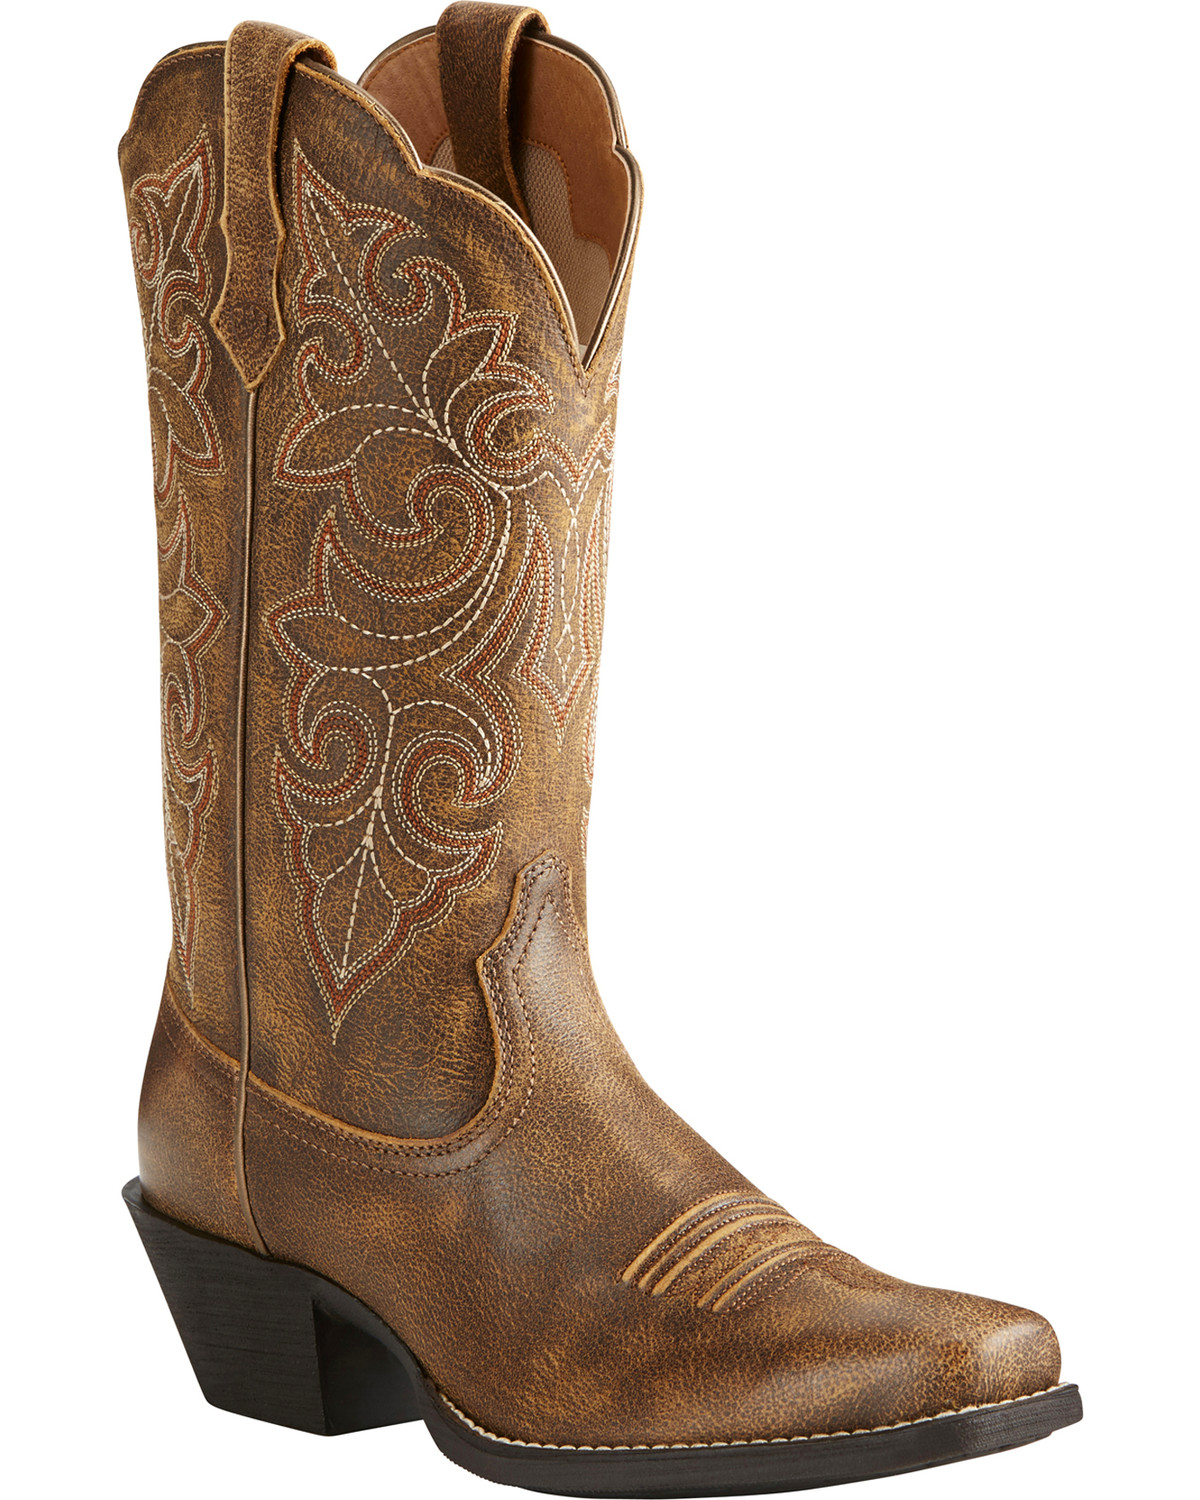 Ariat Women S Round Up Distressed Leather Cowgirl Boots